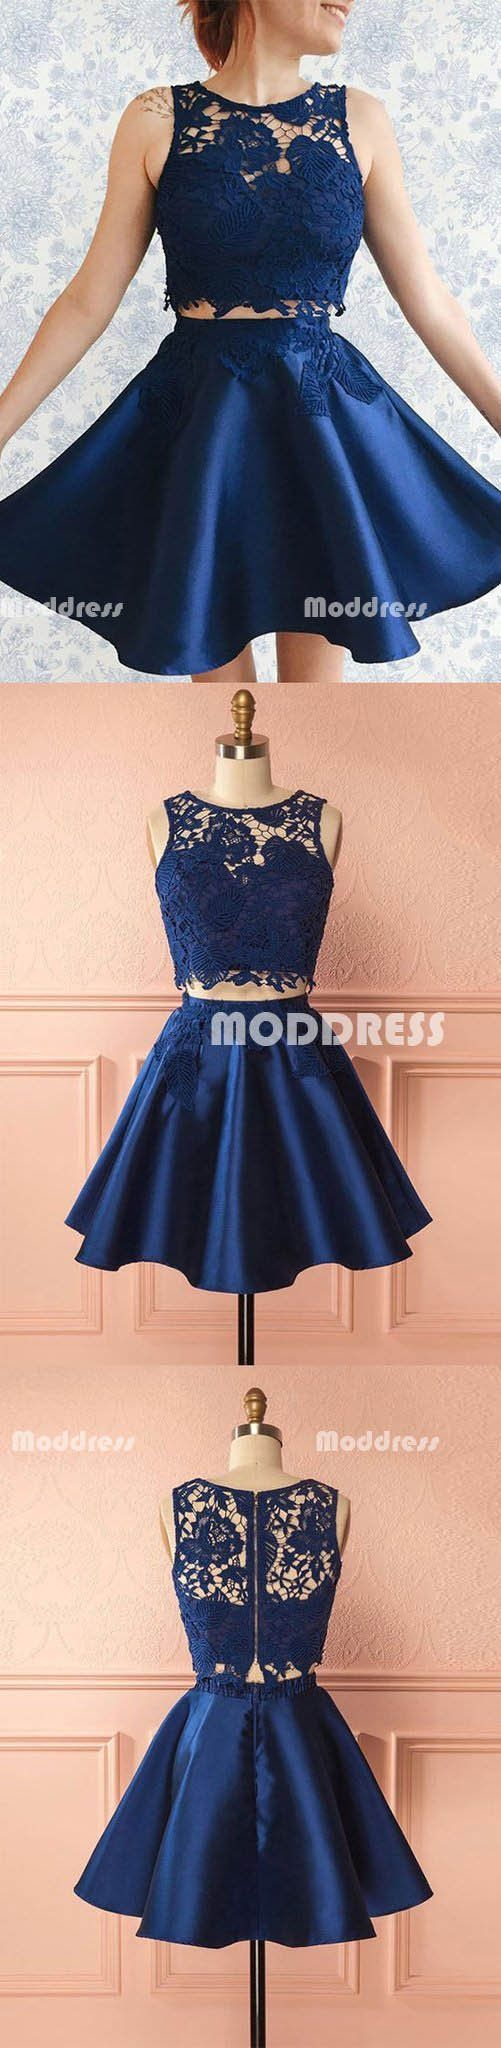 Blue lace pieces short homecoming dresses satin prom dresses knee